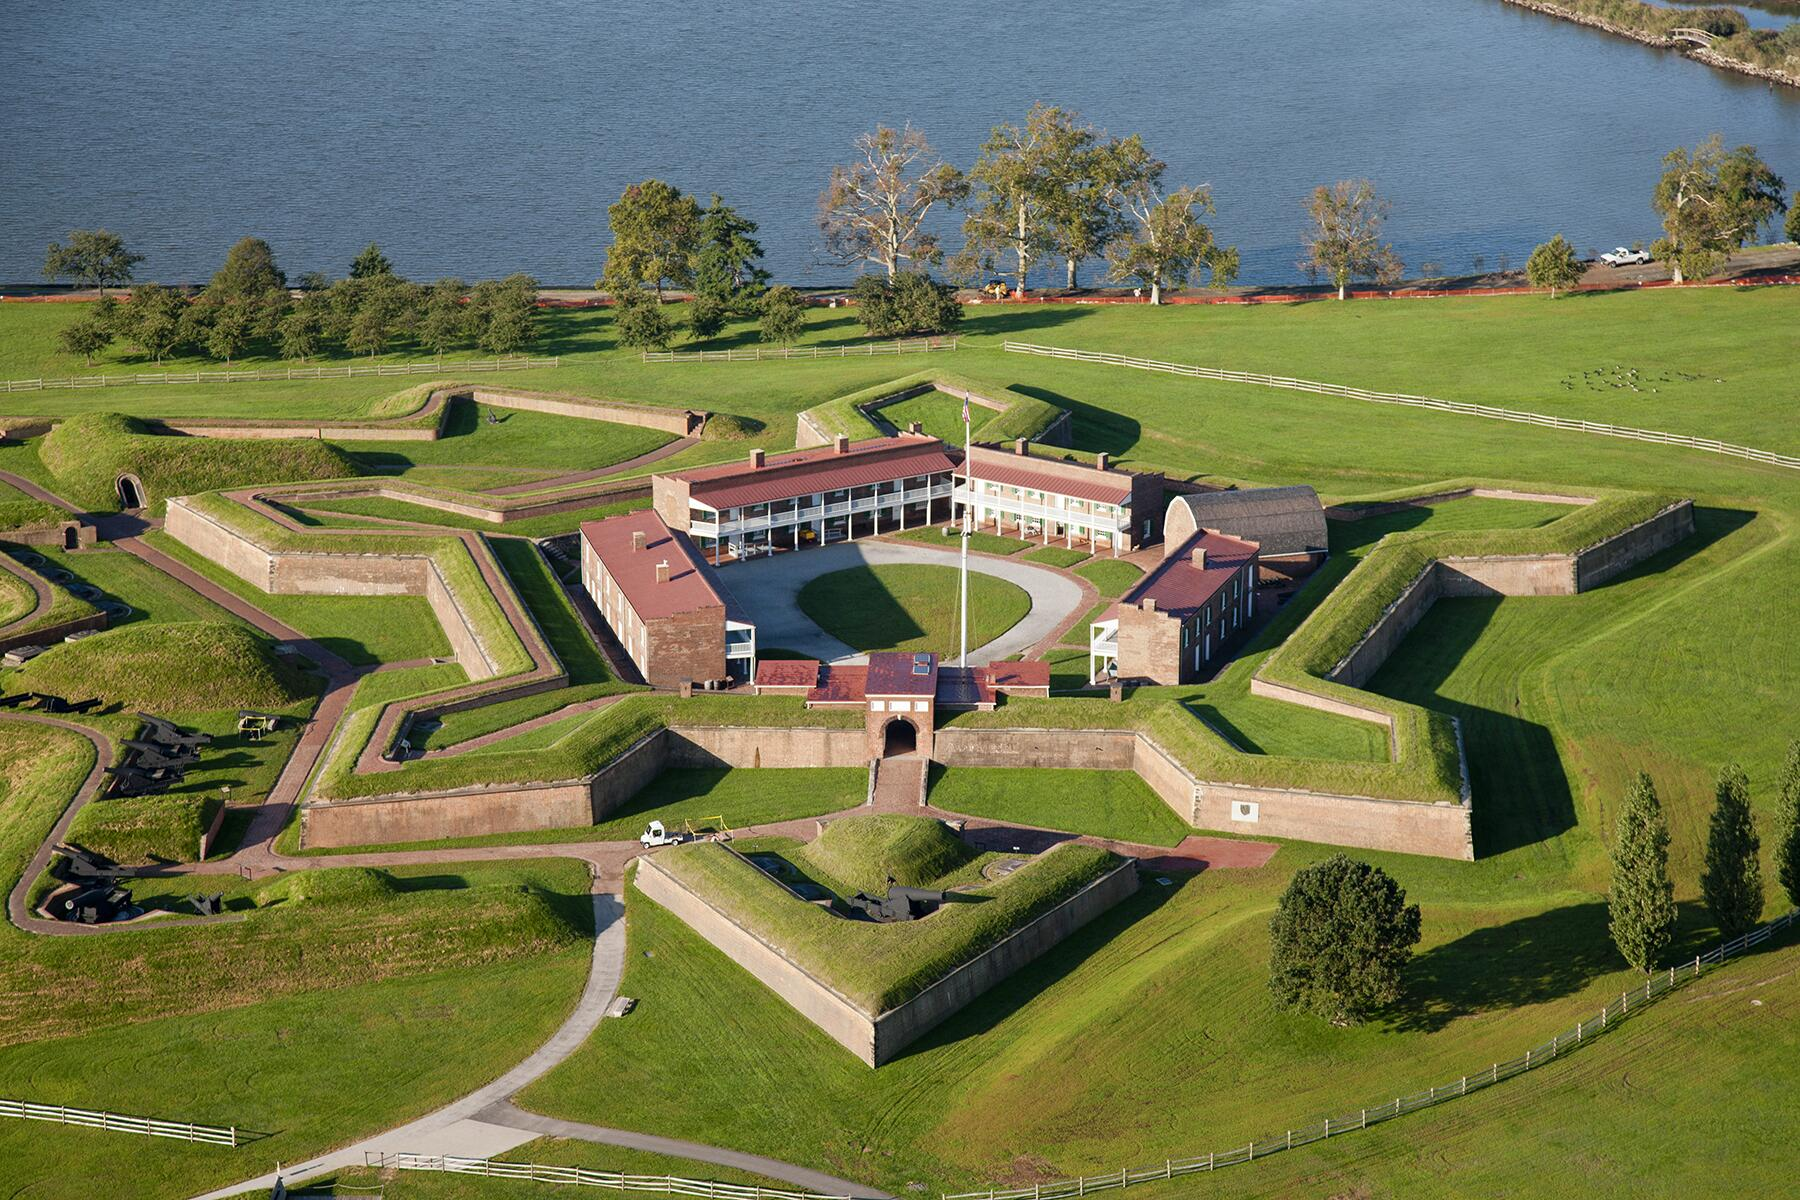 13_LiteraryGuideToBaltimore__FortMcHenryNationalMonument_12 VISIT_BALTIMORE_fort_mchenry_aerial_2012_2